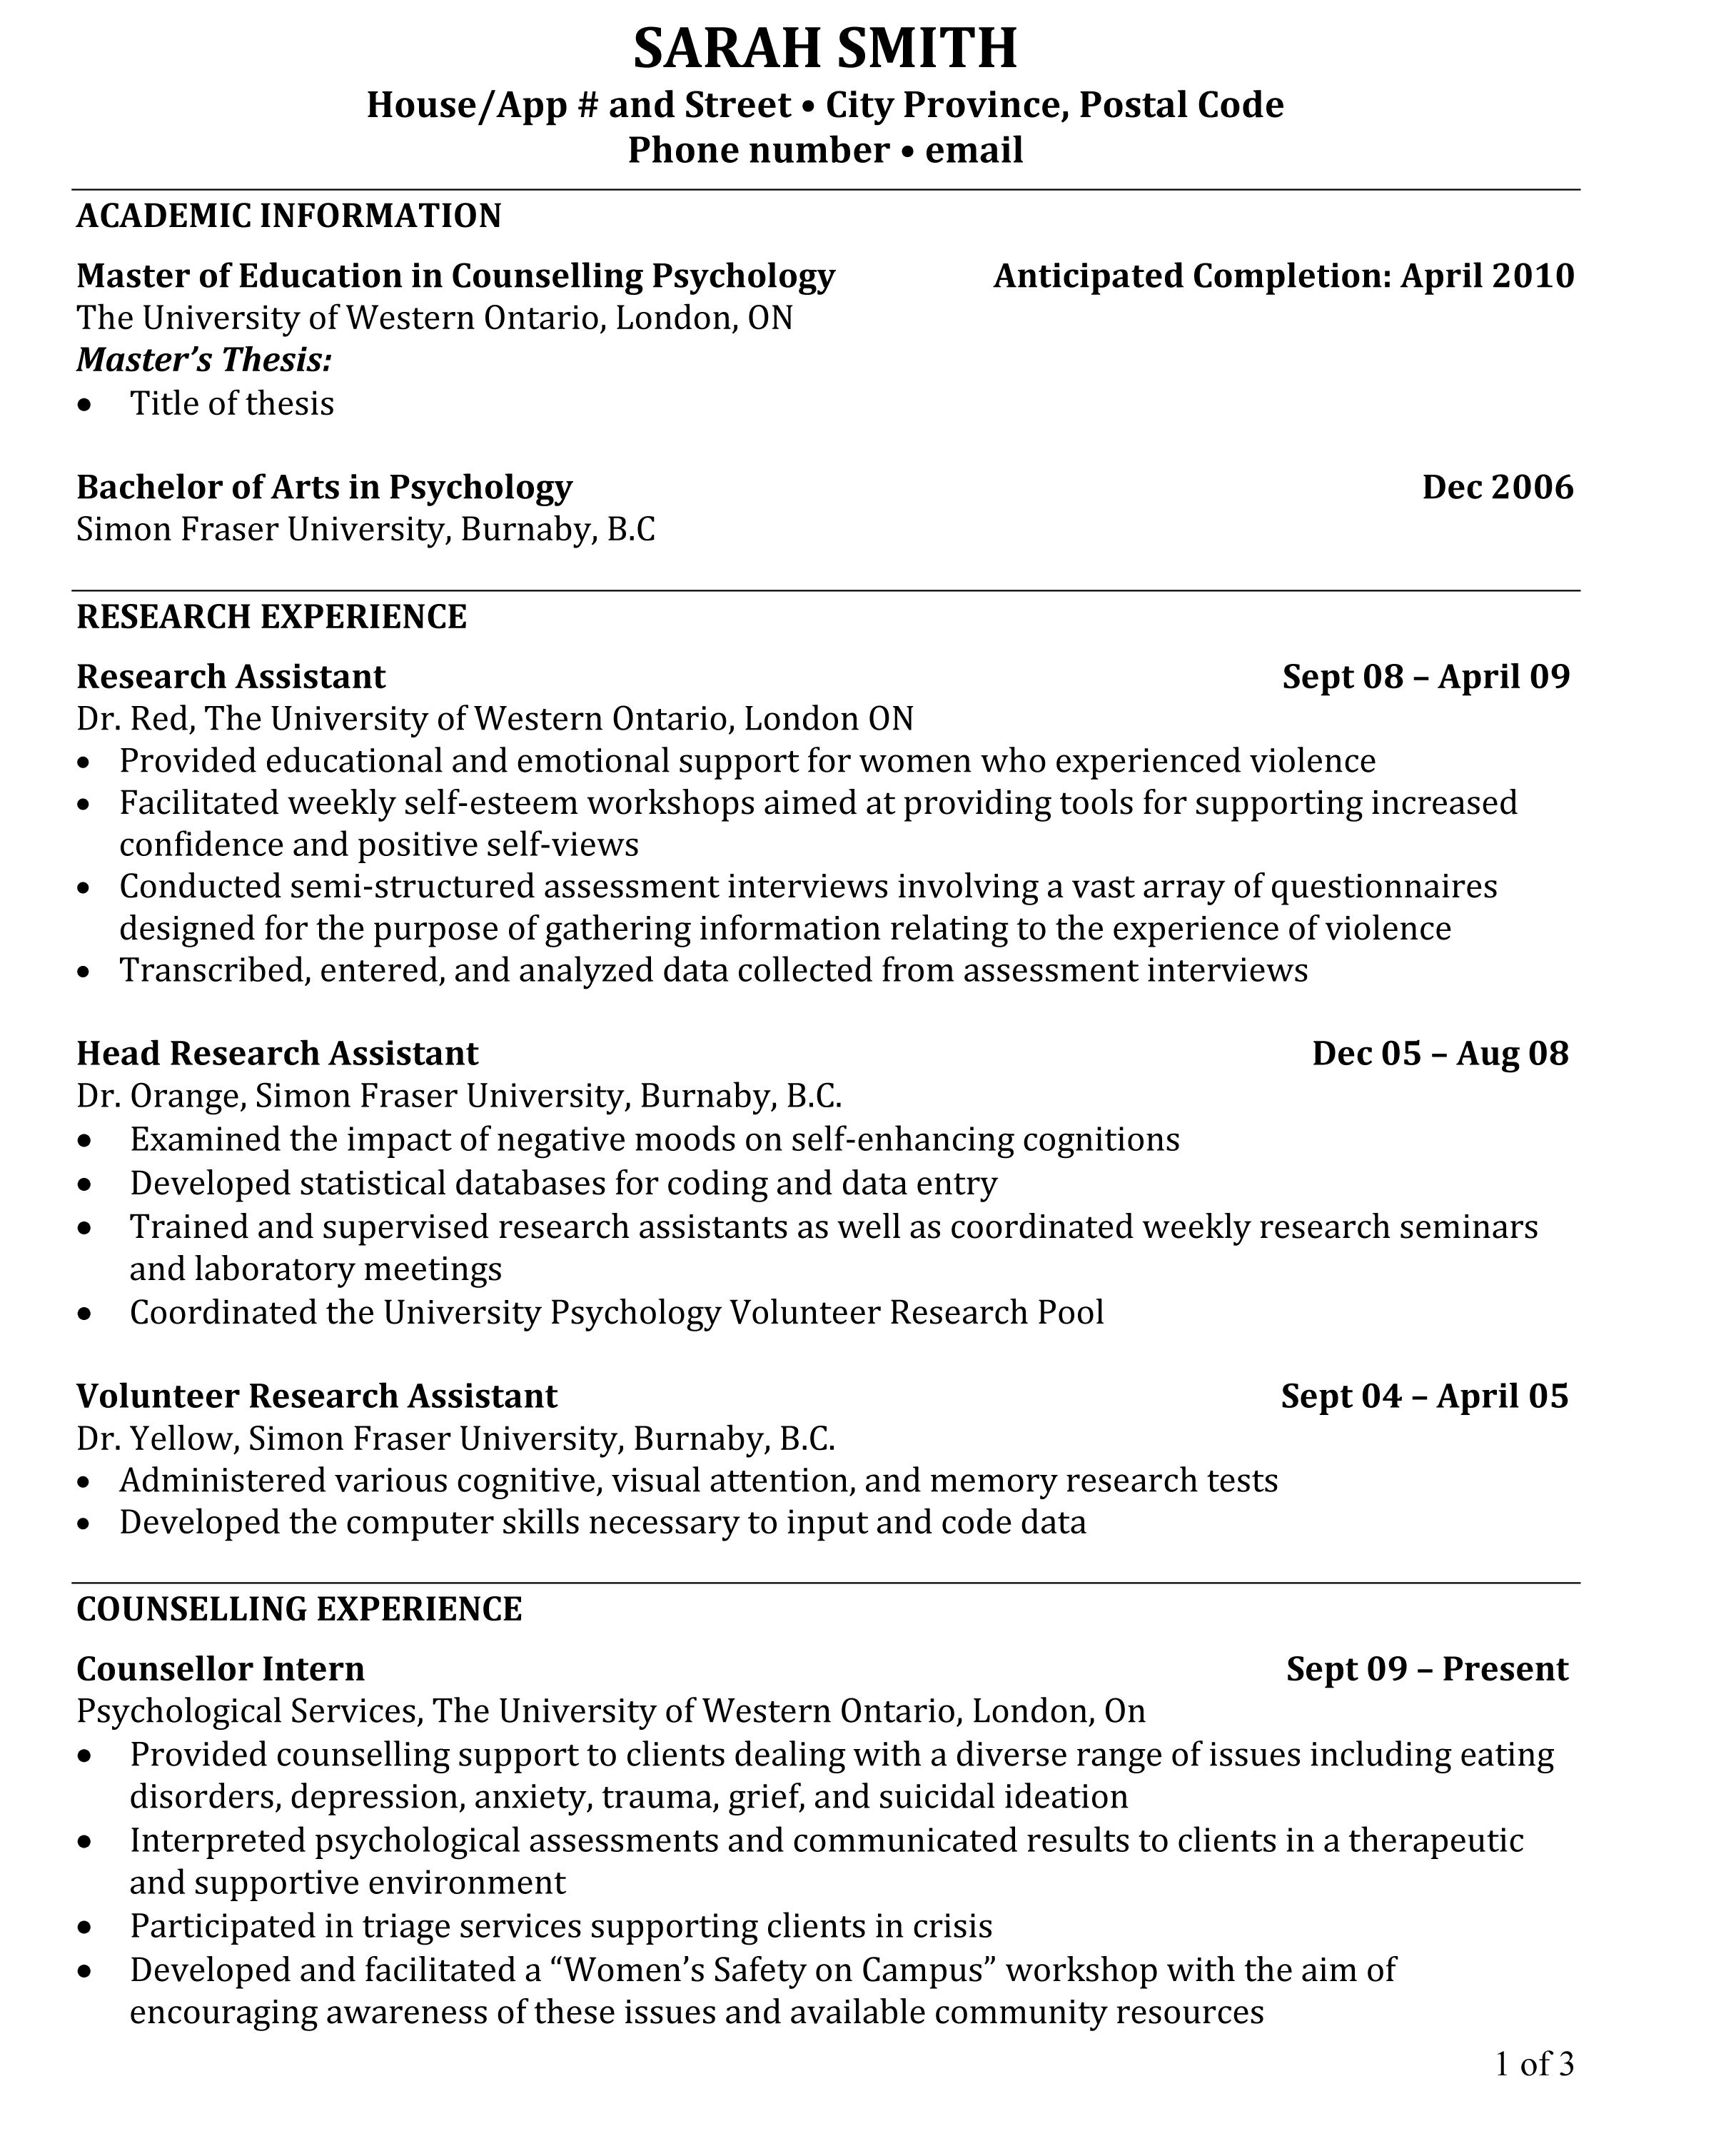 PhD CV The below is much closer to my experience level: http://www